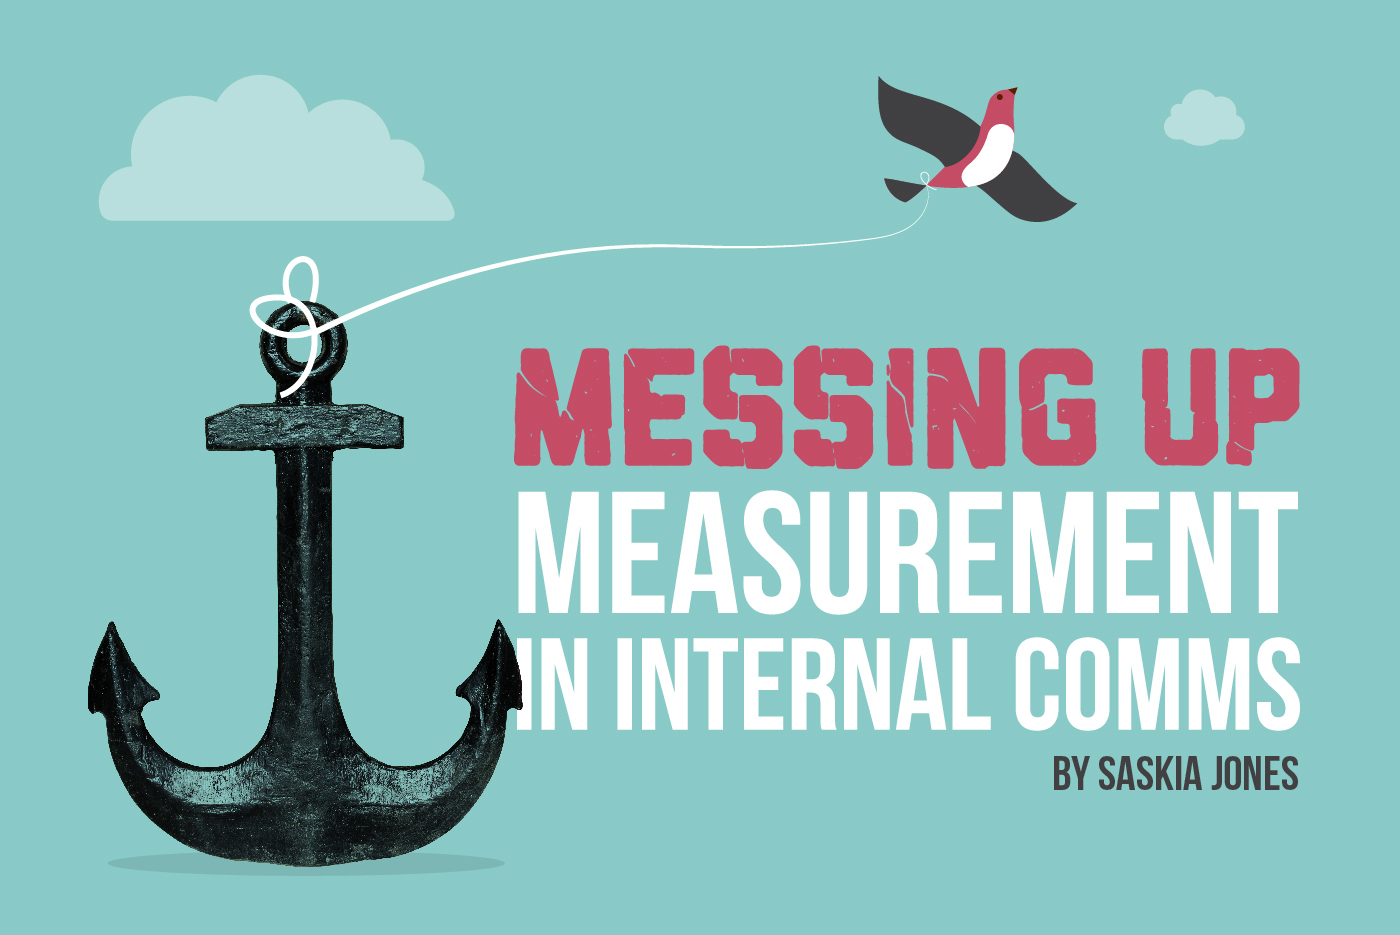 An image of a bird tied to an anchor combined with the text, 'Messing up measurement in internal comms'